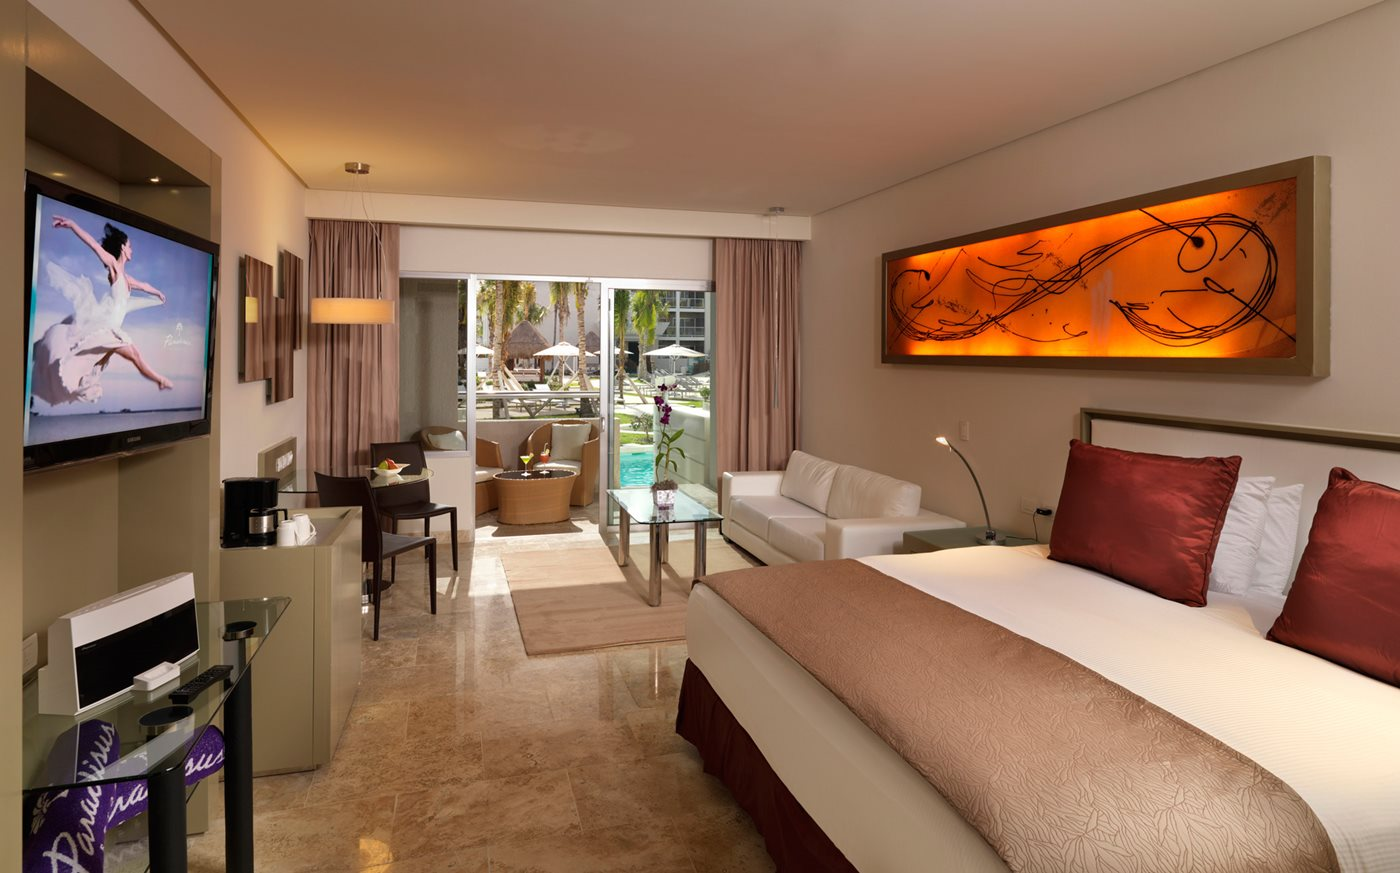 Paradisus Junior Suite  YYZ - CUN 7 NIGHT PACKAGE   DOUBLE OCCUPANCY :  $1599 CAD PER ADULT   CHILD AGES 2-12 : $799 CAD PER CHILD (WHEN SHARING A ROOM WITH TWO ADULTS)  Please Note: This quote is only valid until August 21st